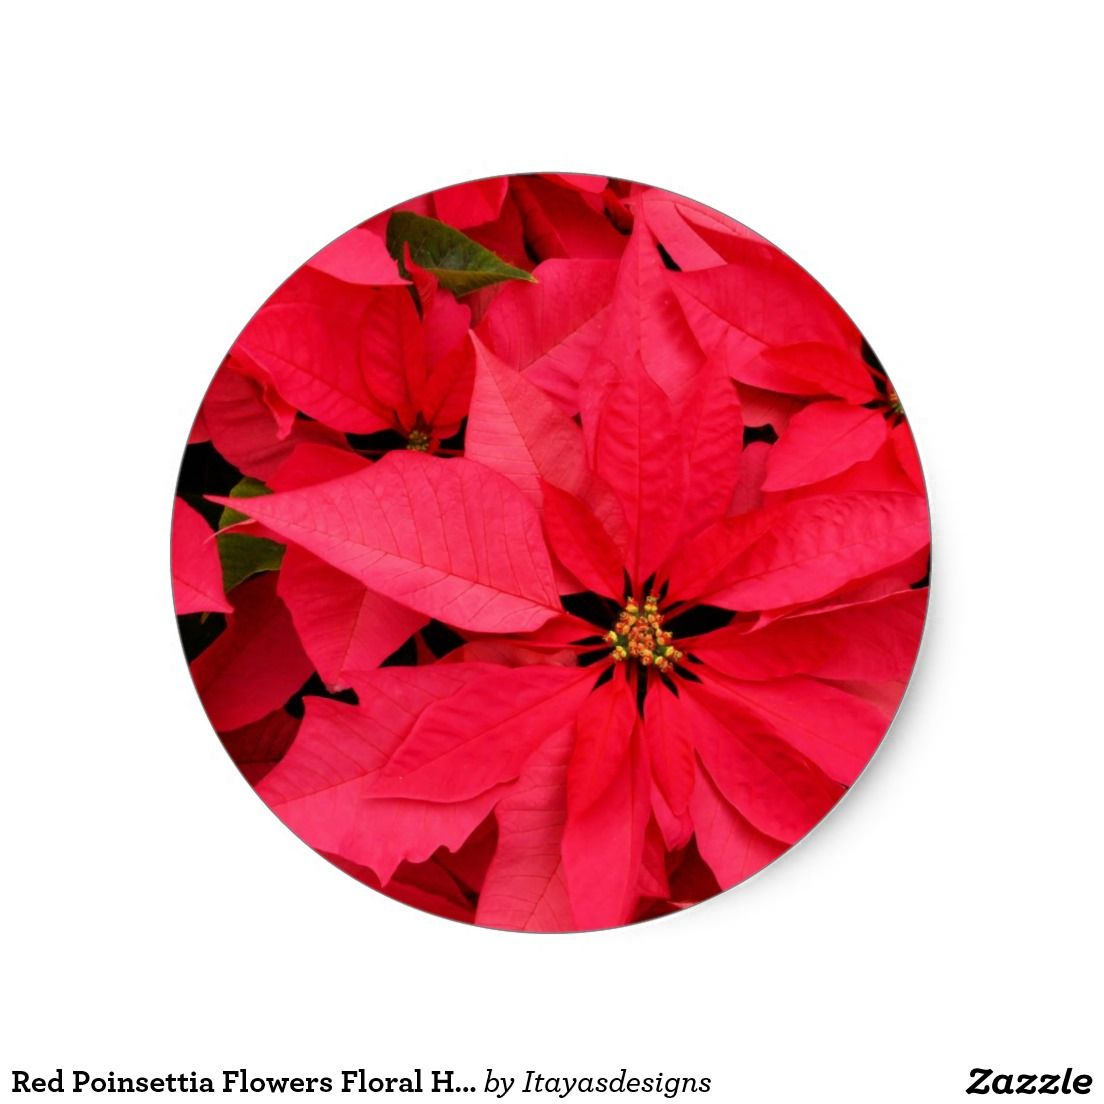 Red Poinsettia Flowers Floral Holiday Greetings Classic Round Sticker Zazzle Com Poinsettia Plant Poinsettia Care Christmas Plants